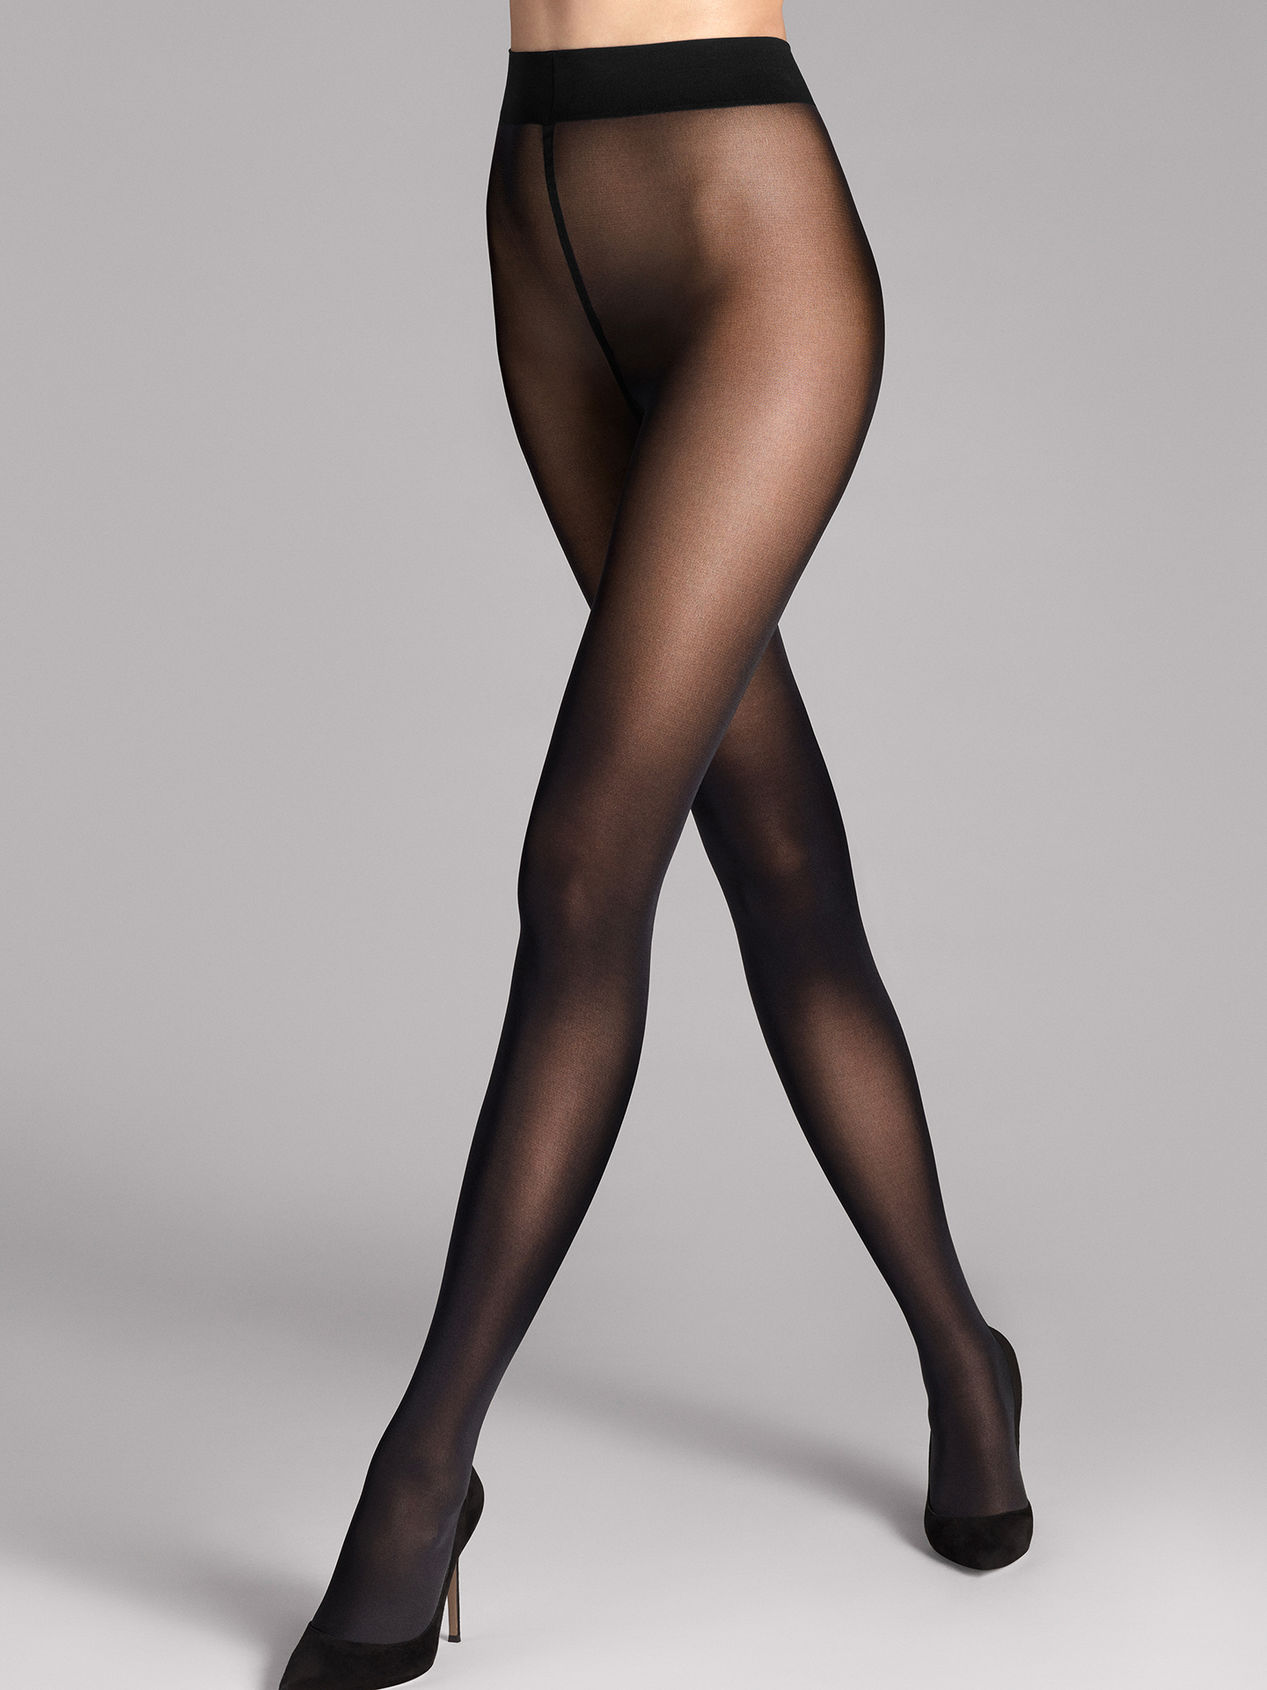 Most Pantyhose Do